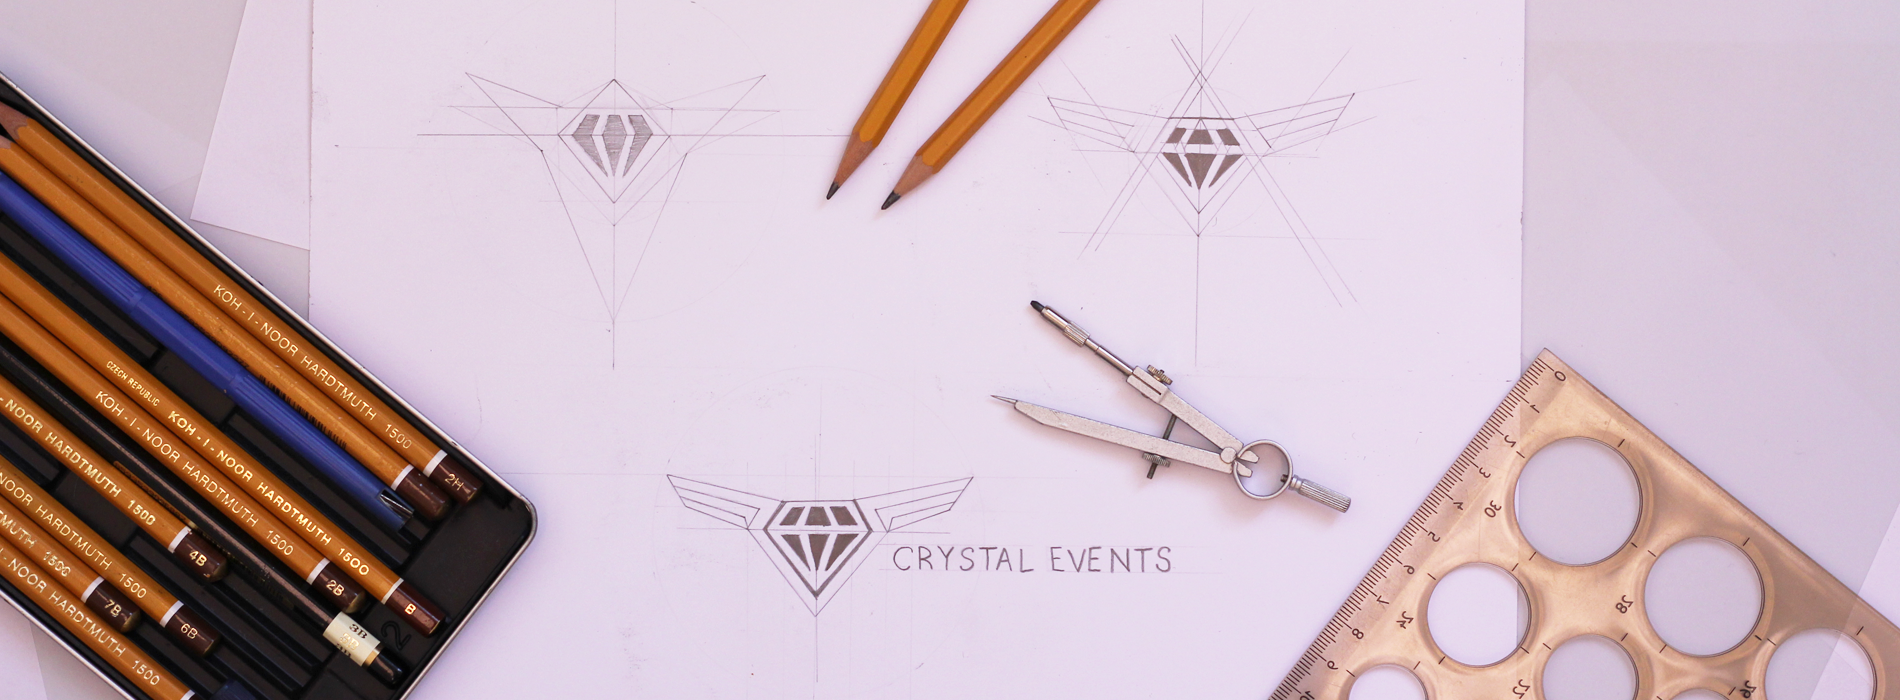 Crystal Events kresba 2 1900x700